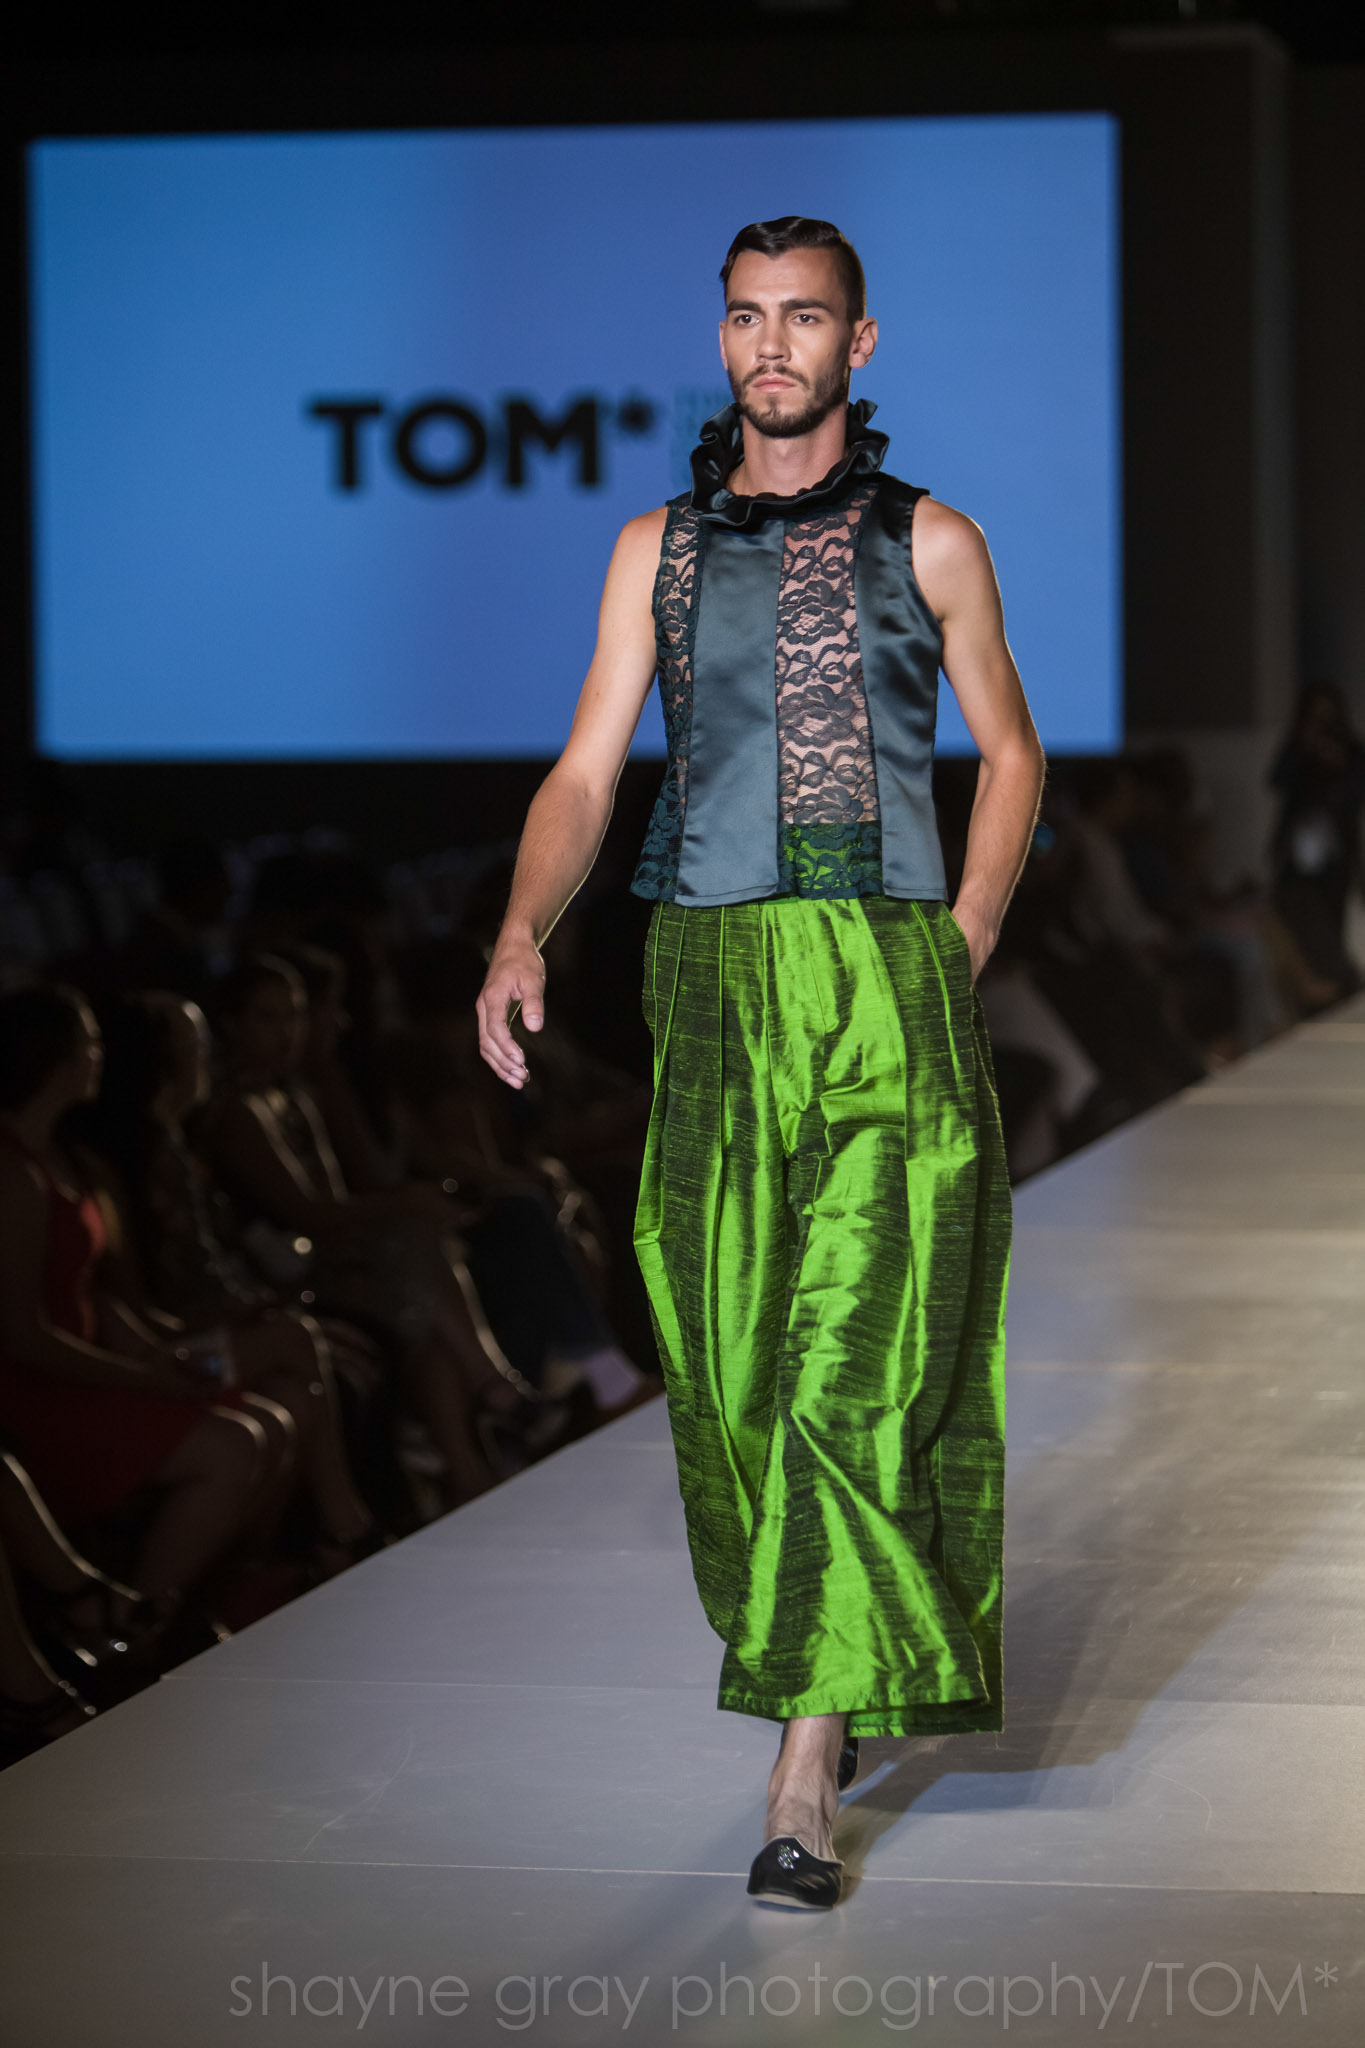 Shayne-Gray-Toronto-men's-fashion_week-TOM-l'uomo-strano-8632.jpg